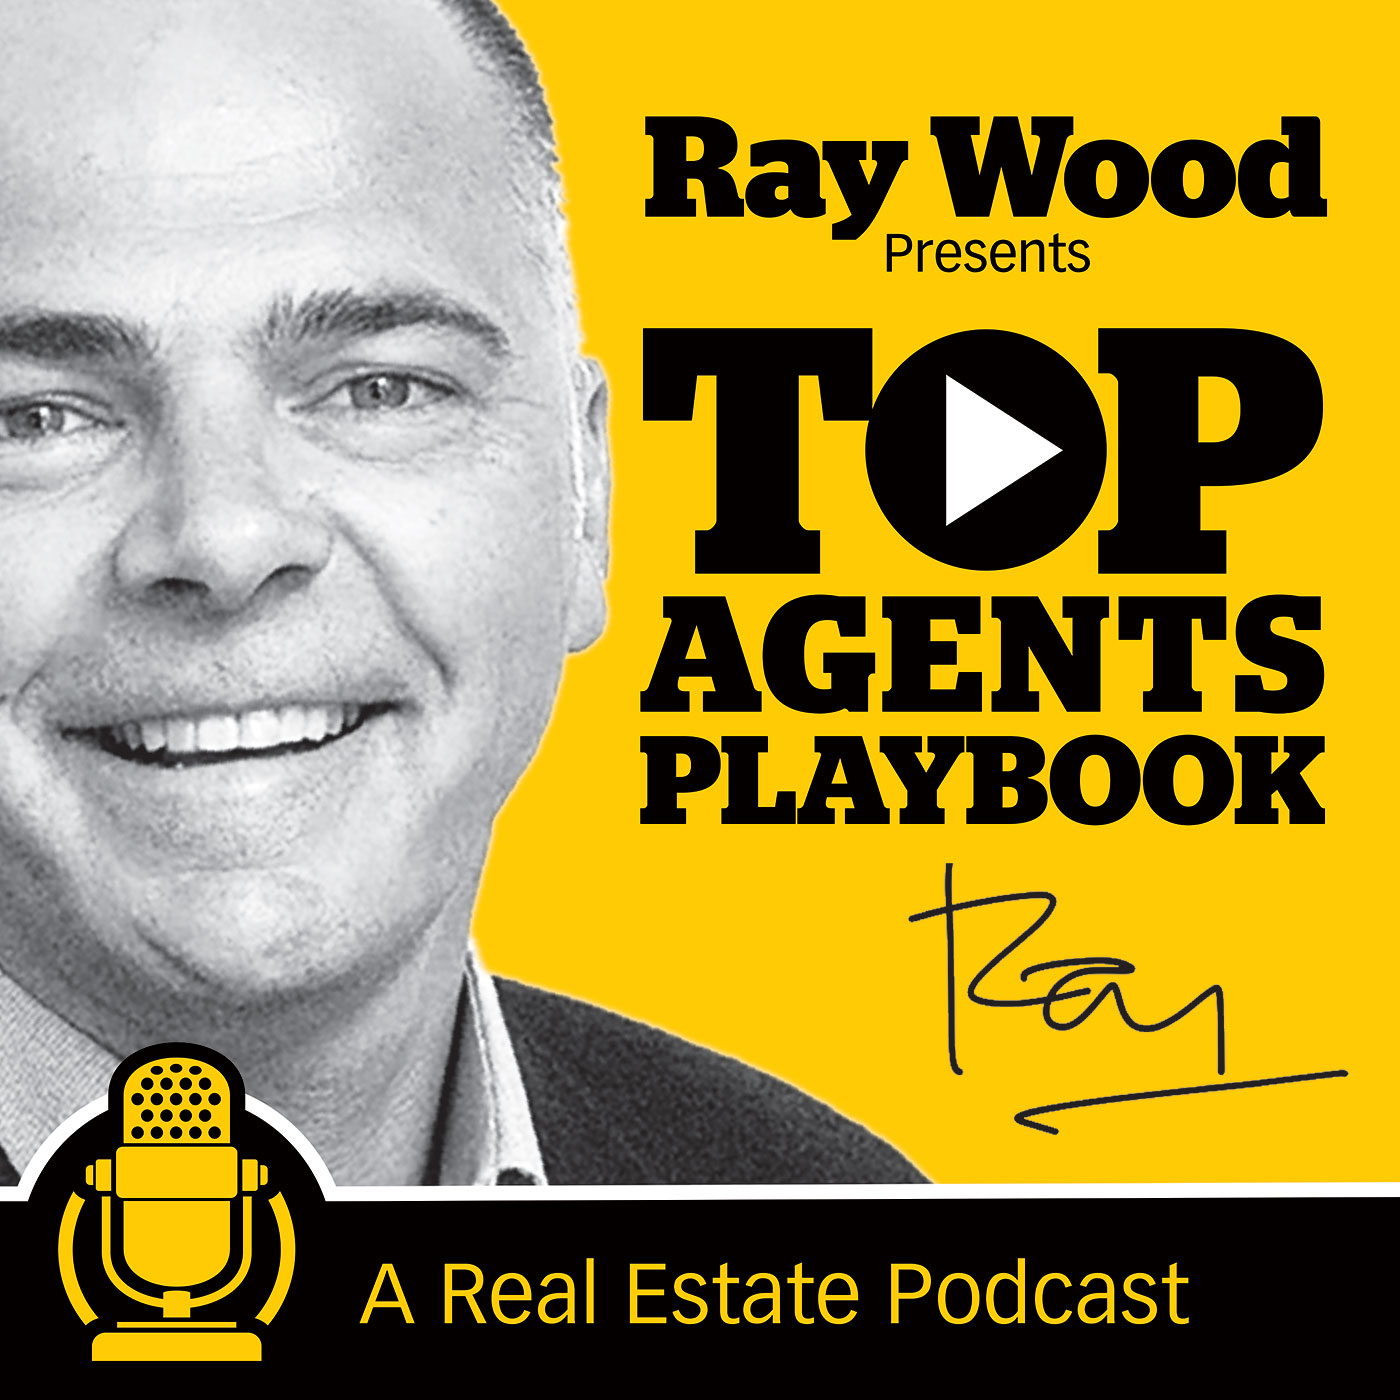 Top Agents Playbook: The Podcast For Real Estate Agents Presented by Ray Wood